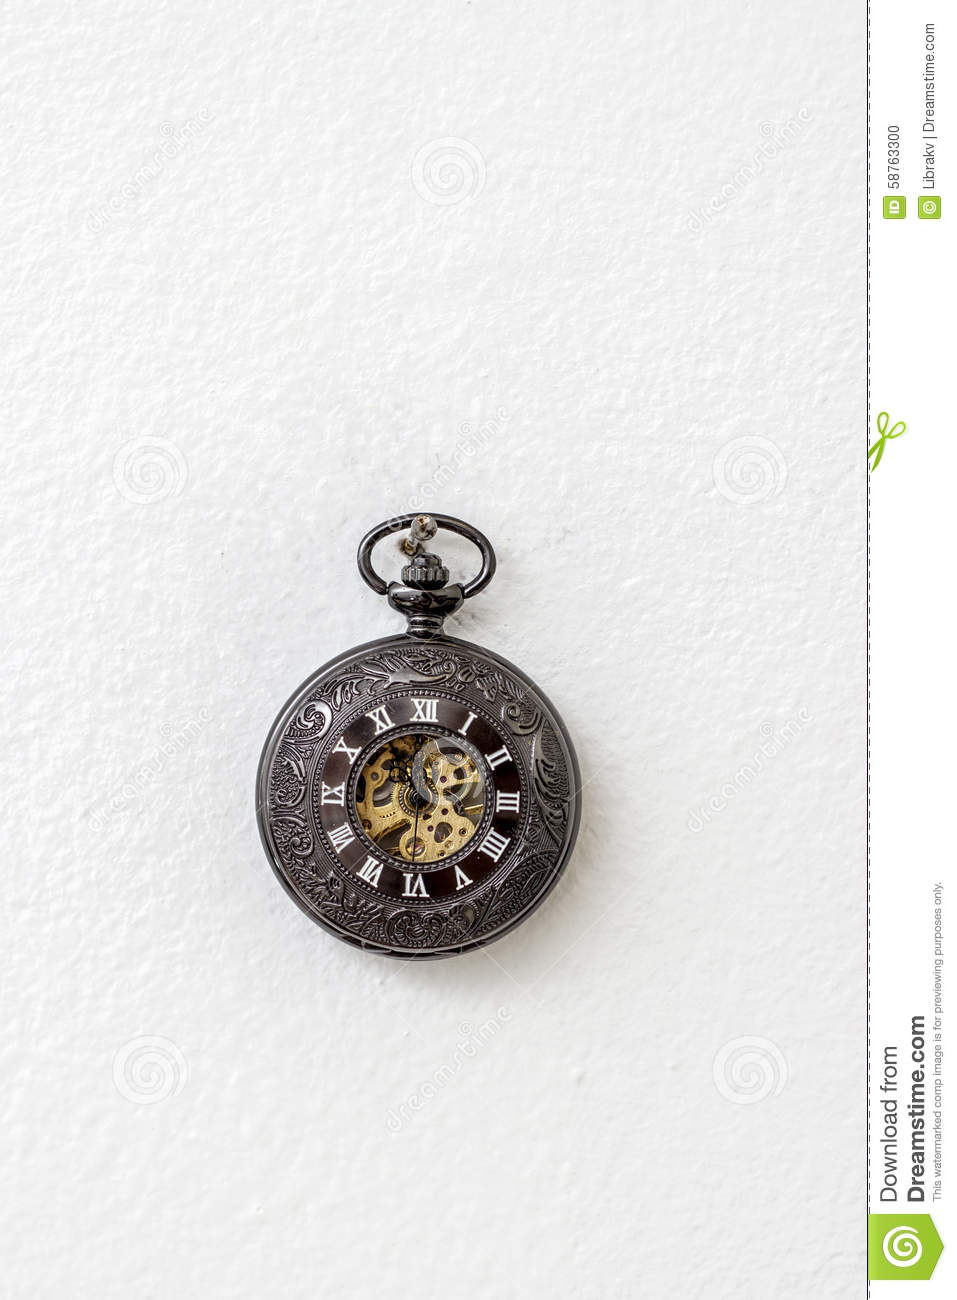 Old Pocket Watch Hanging On The White Wall Stock Photo ...